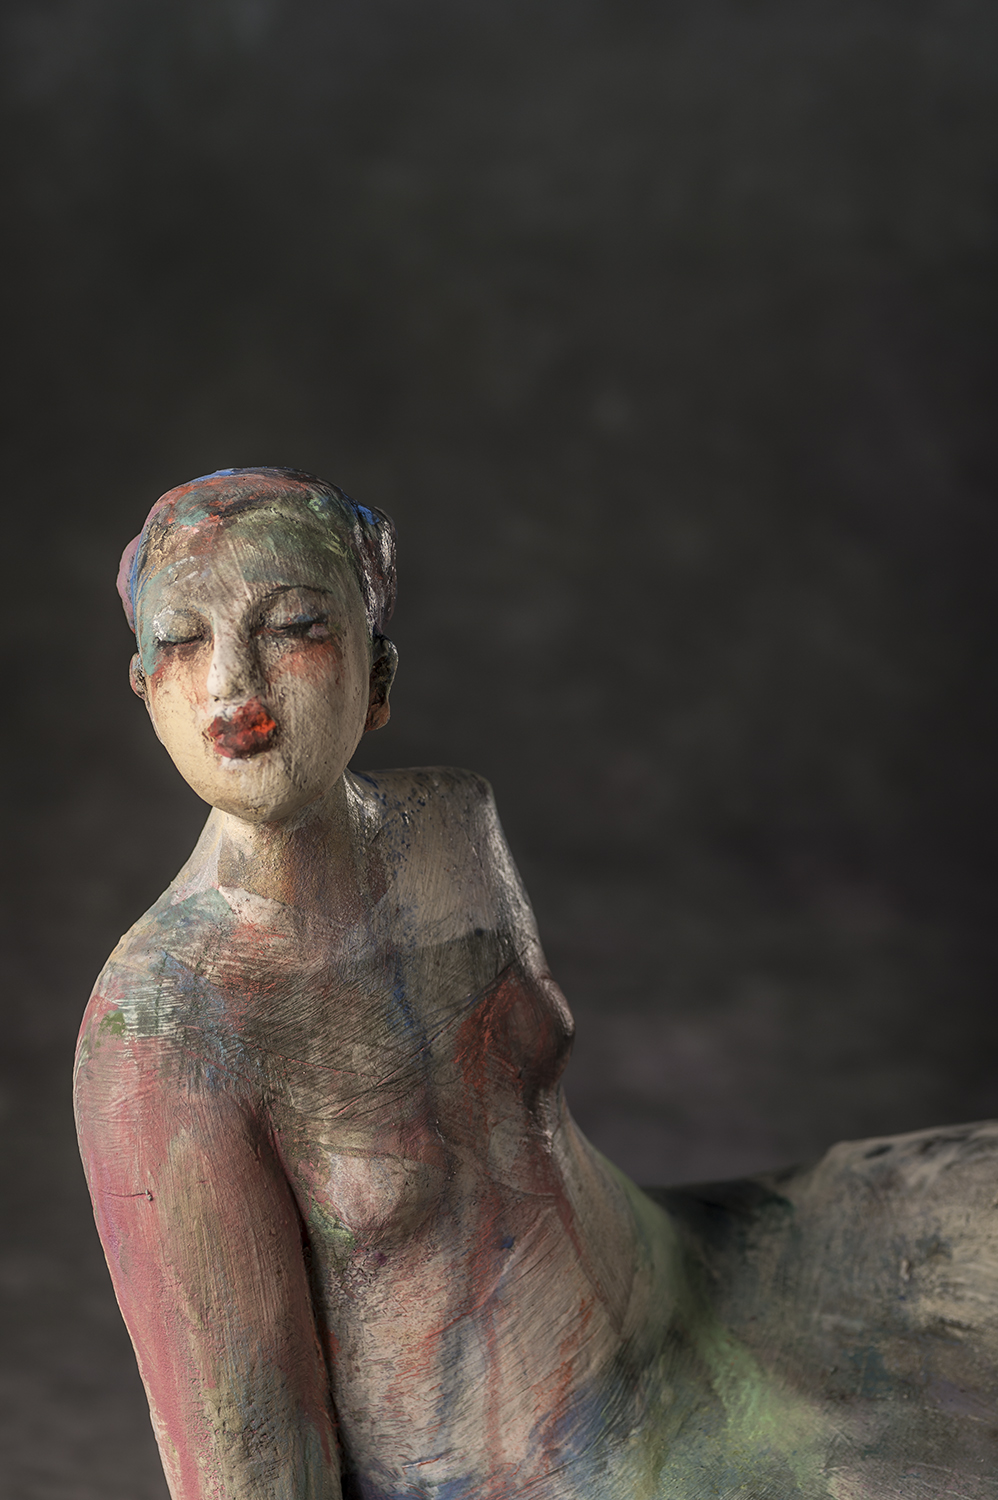 Girl On Plinth (detail)